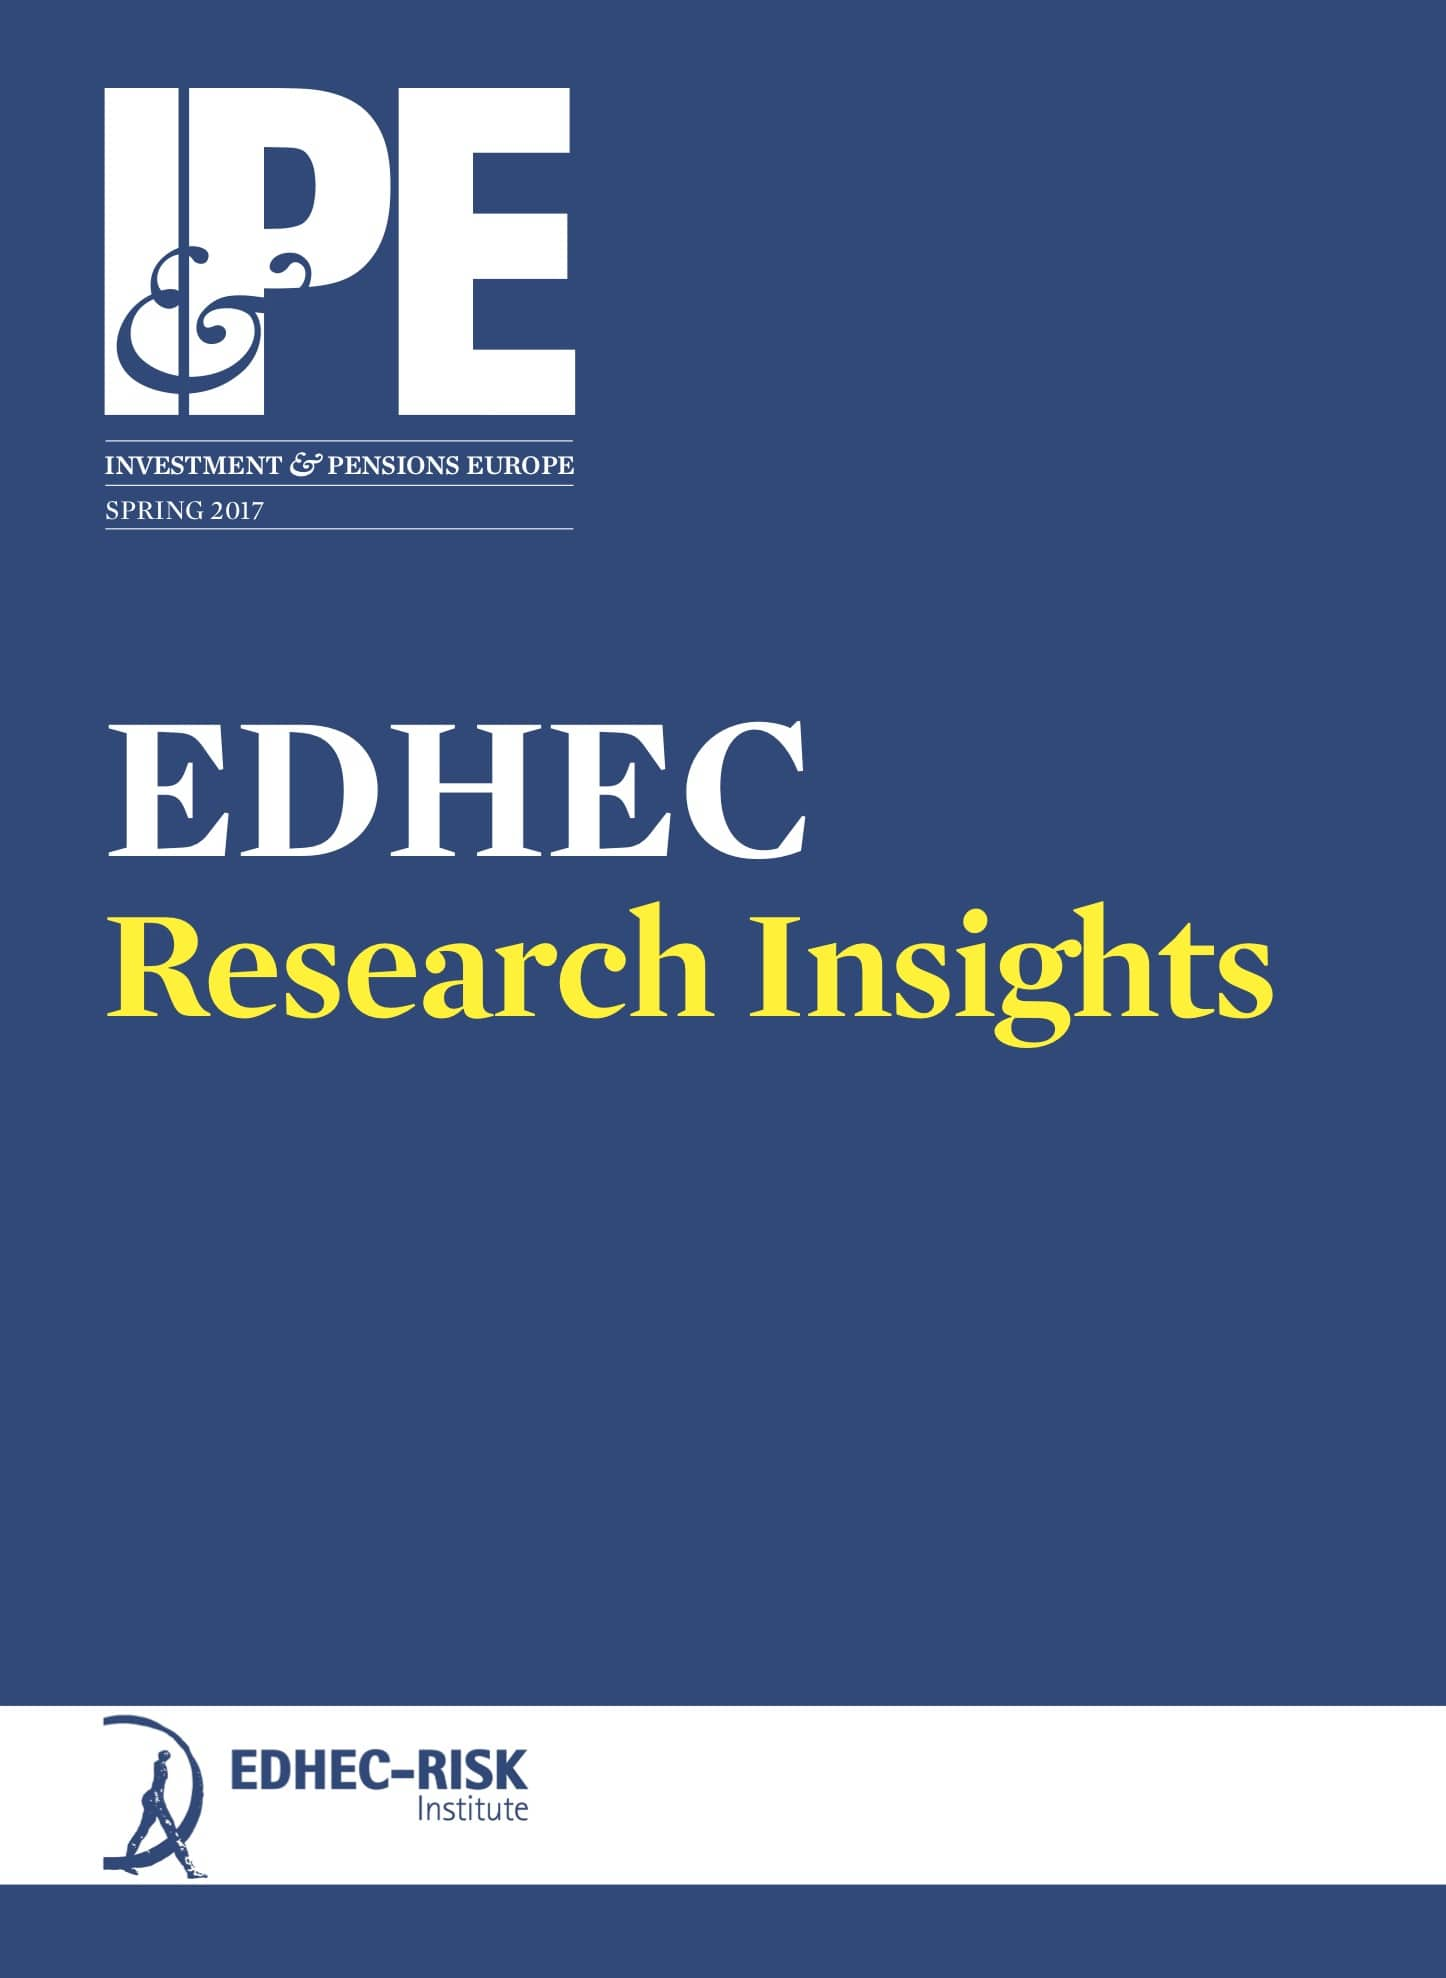 2017 EDHEC Research Insights